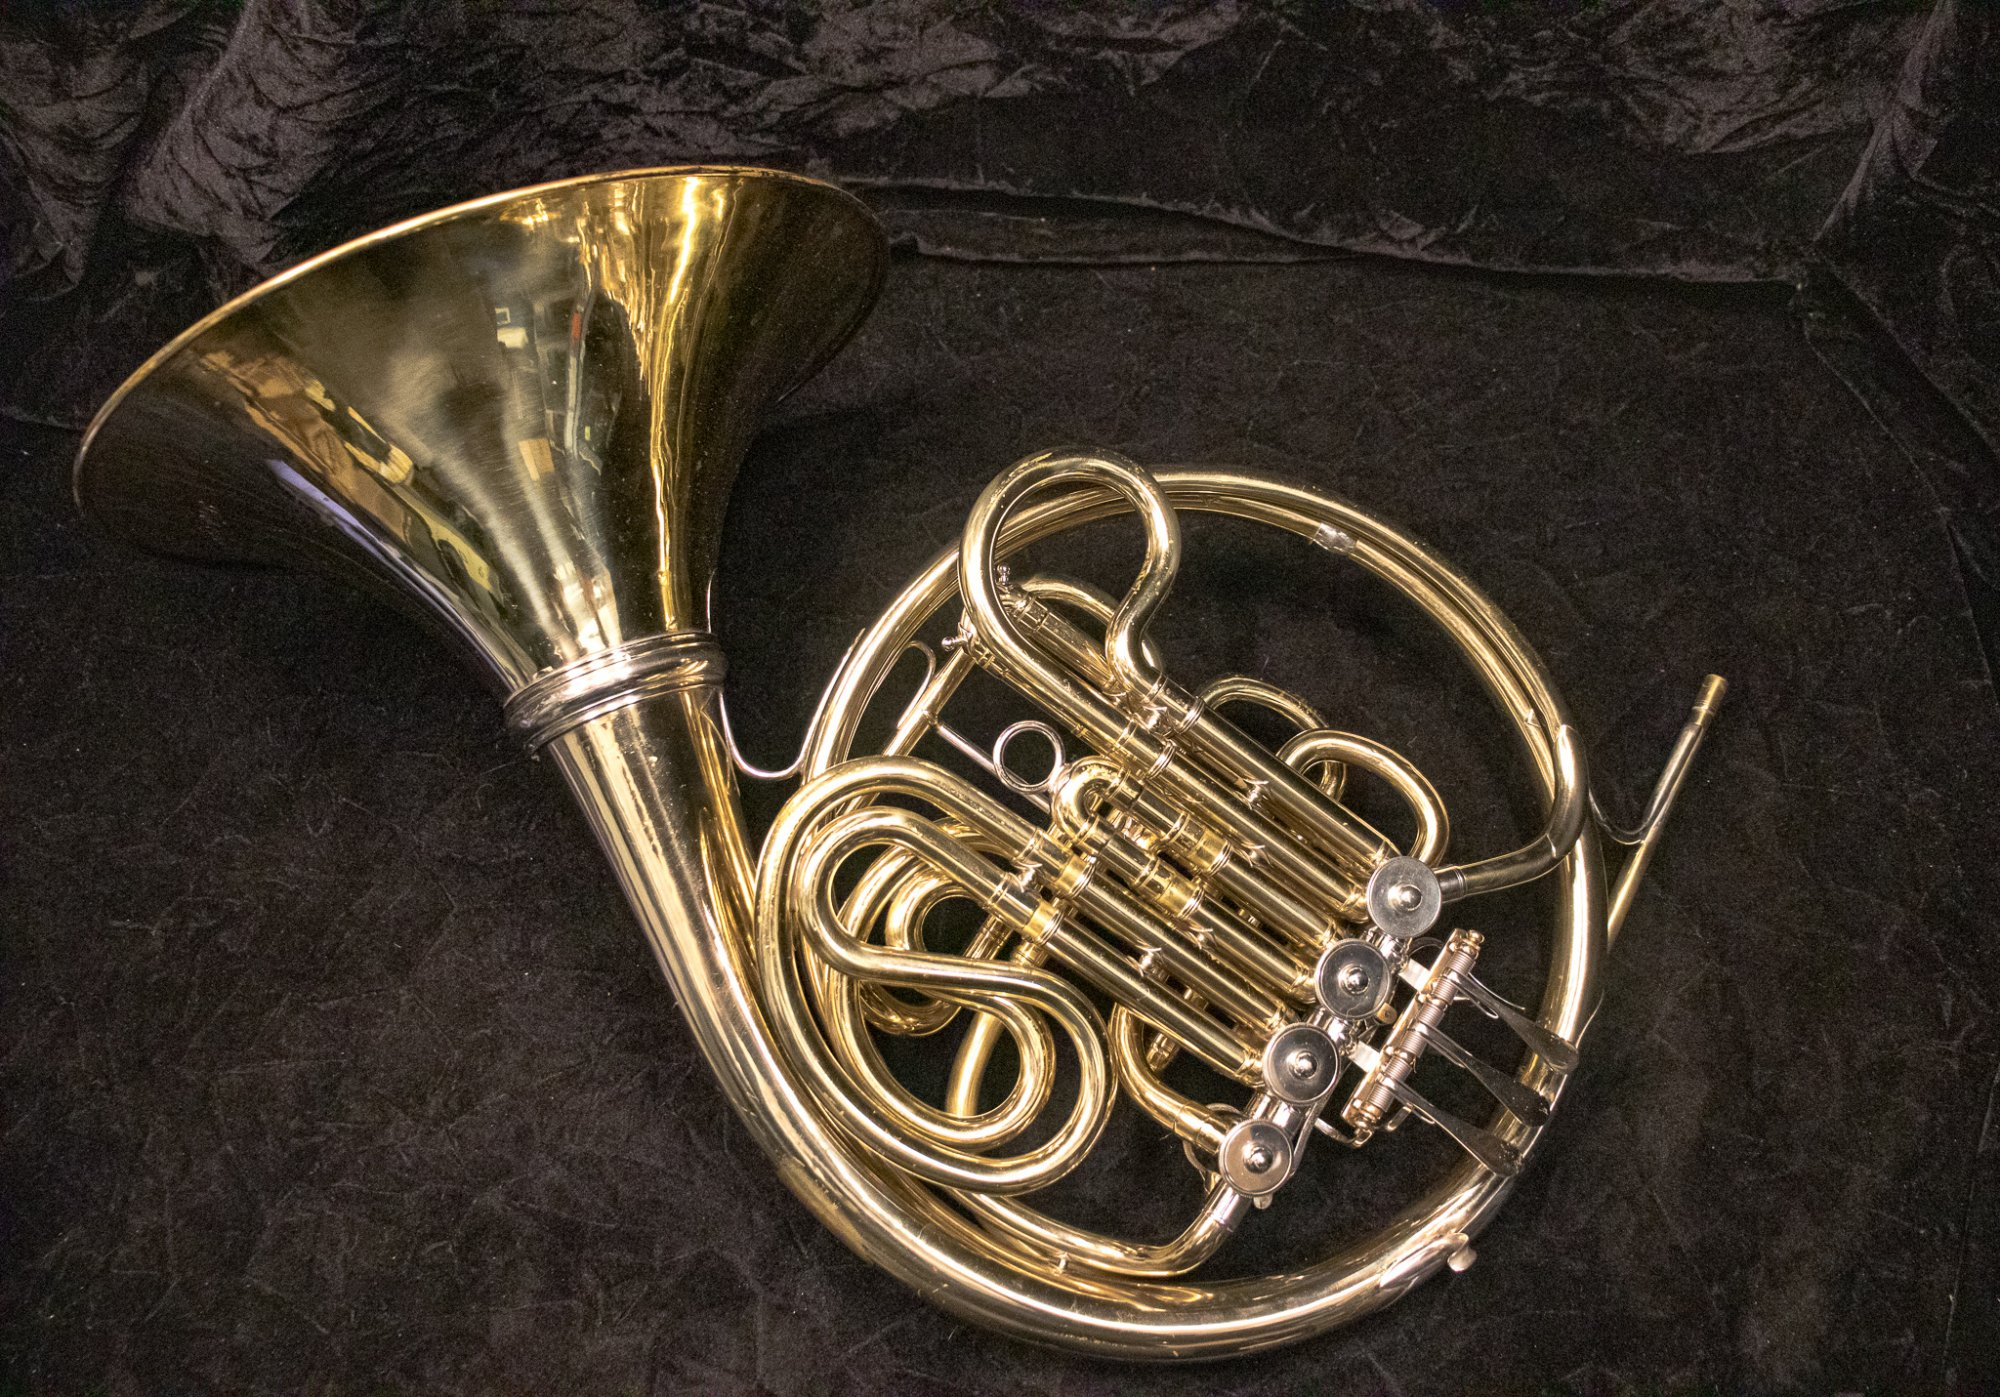 Knopf Model 16 French Horn